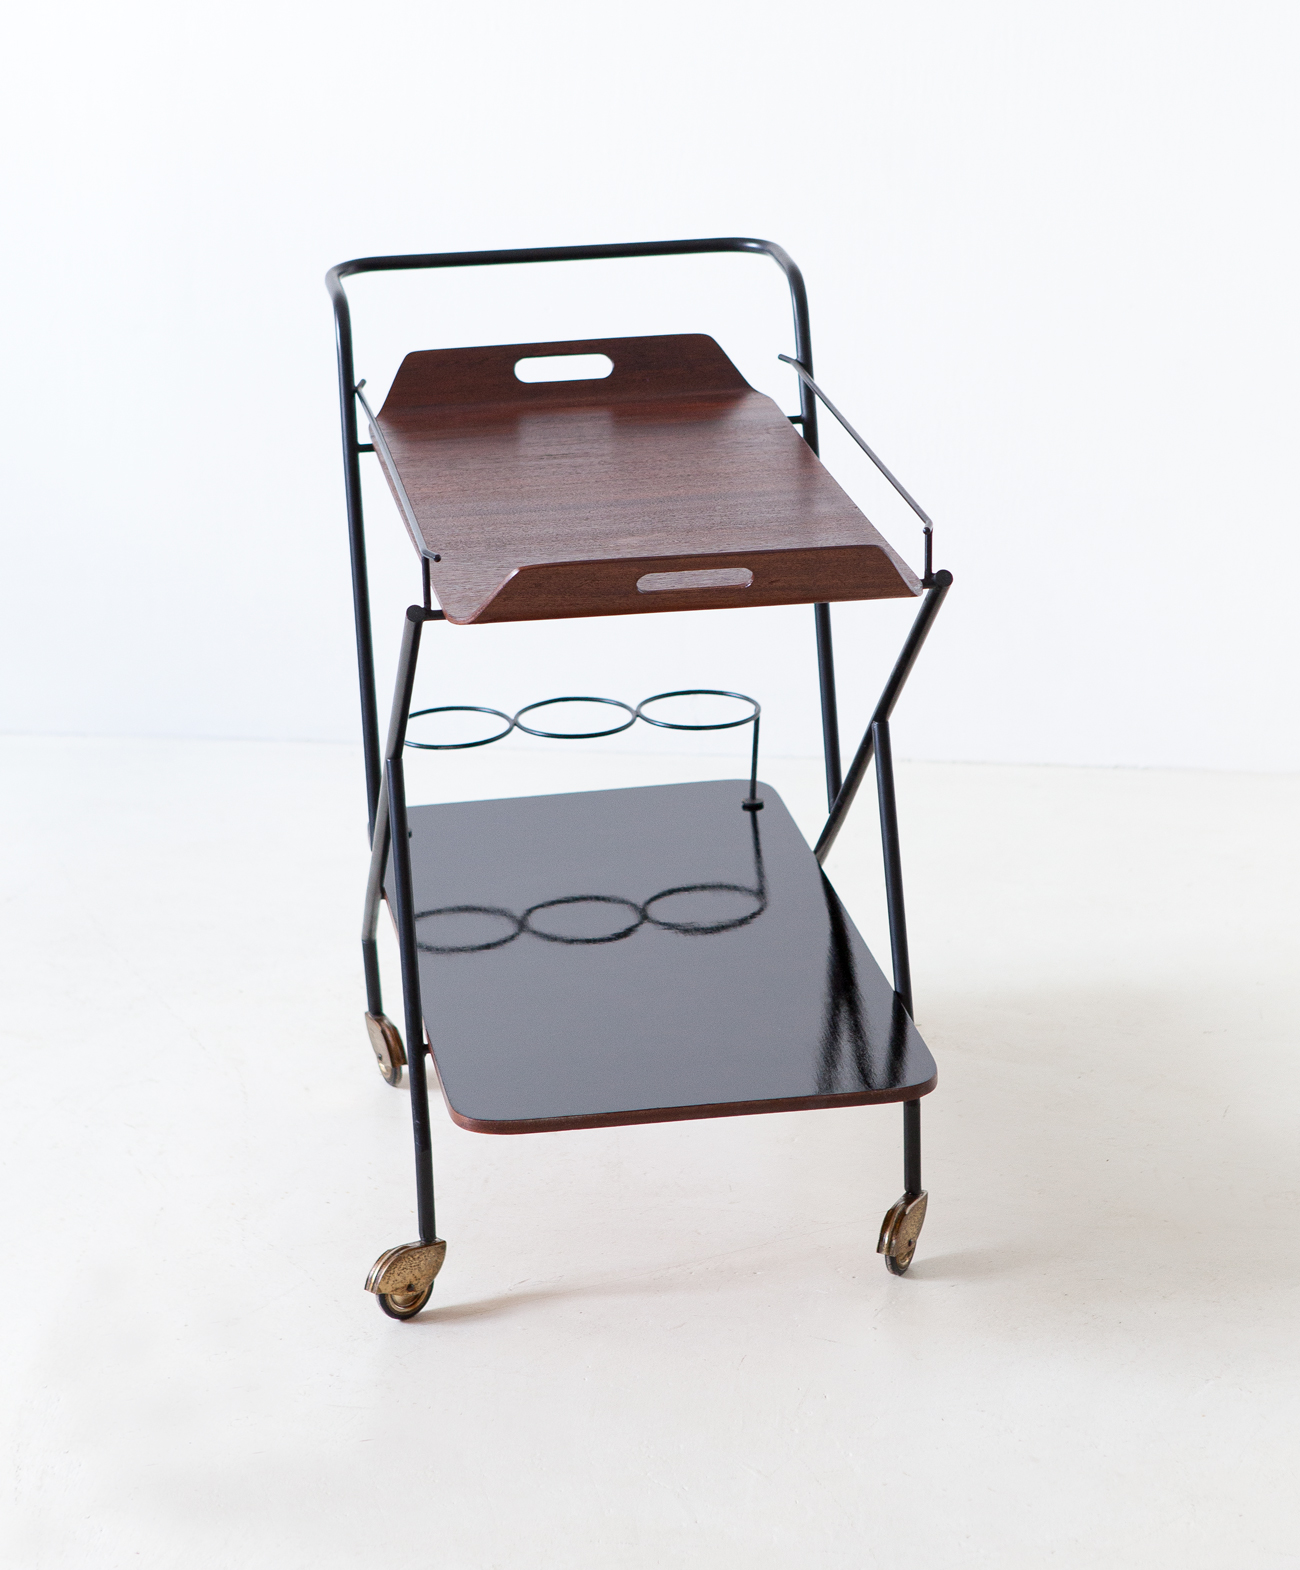 1950s-italian-design-bar-cart-8-of99